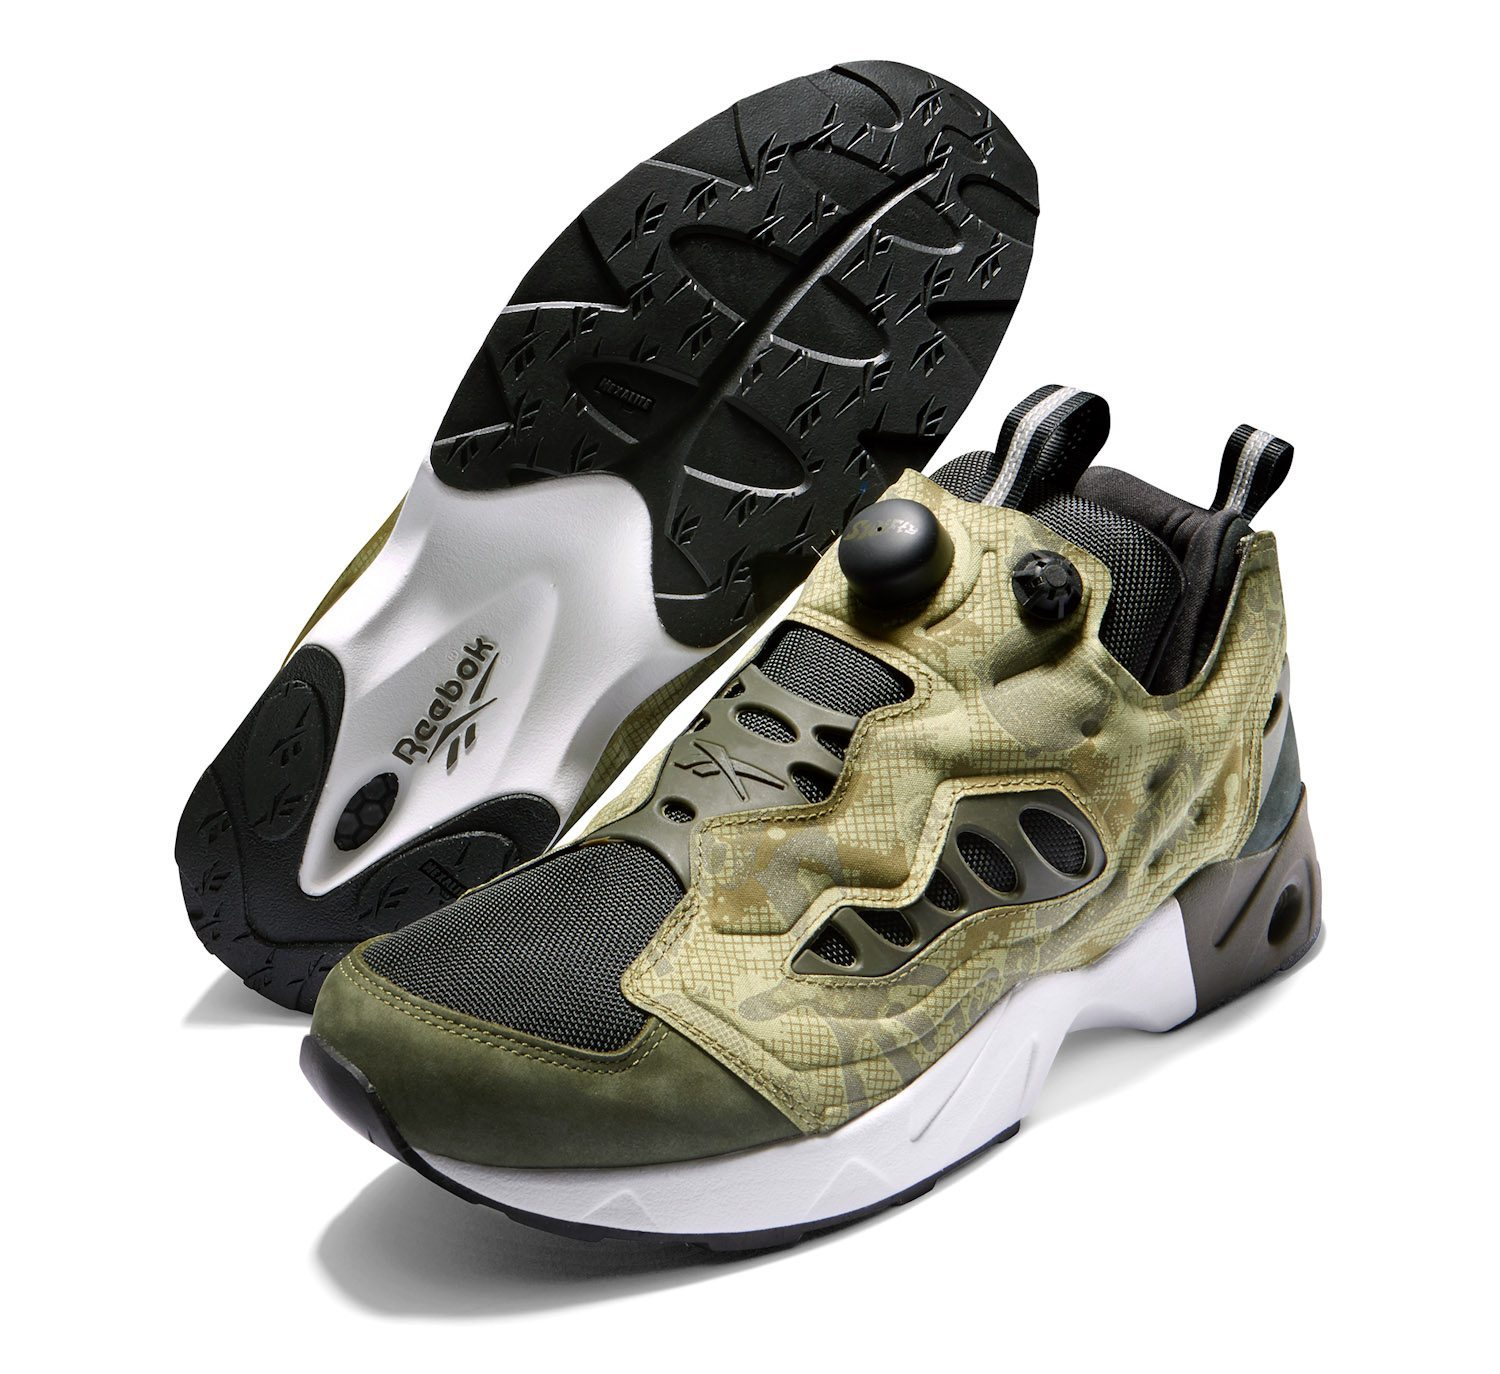 Swifty x Reebok Classic Instapump Fury Road Night Camo 6